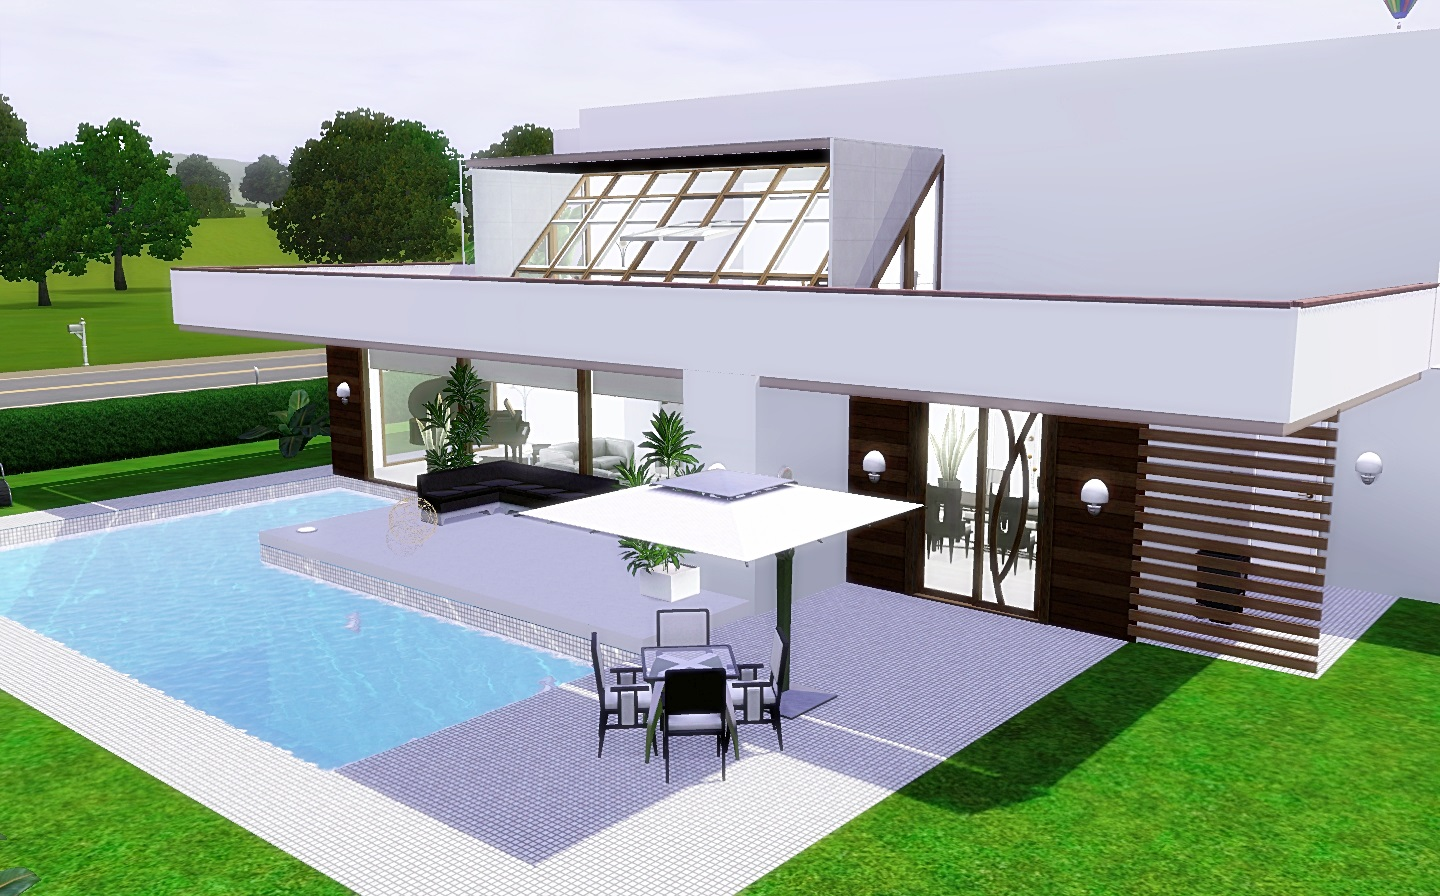 The sims 3 modern house house modern for Modern house 3